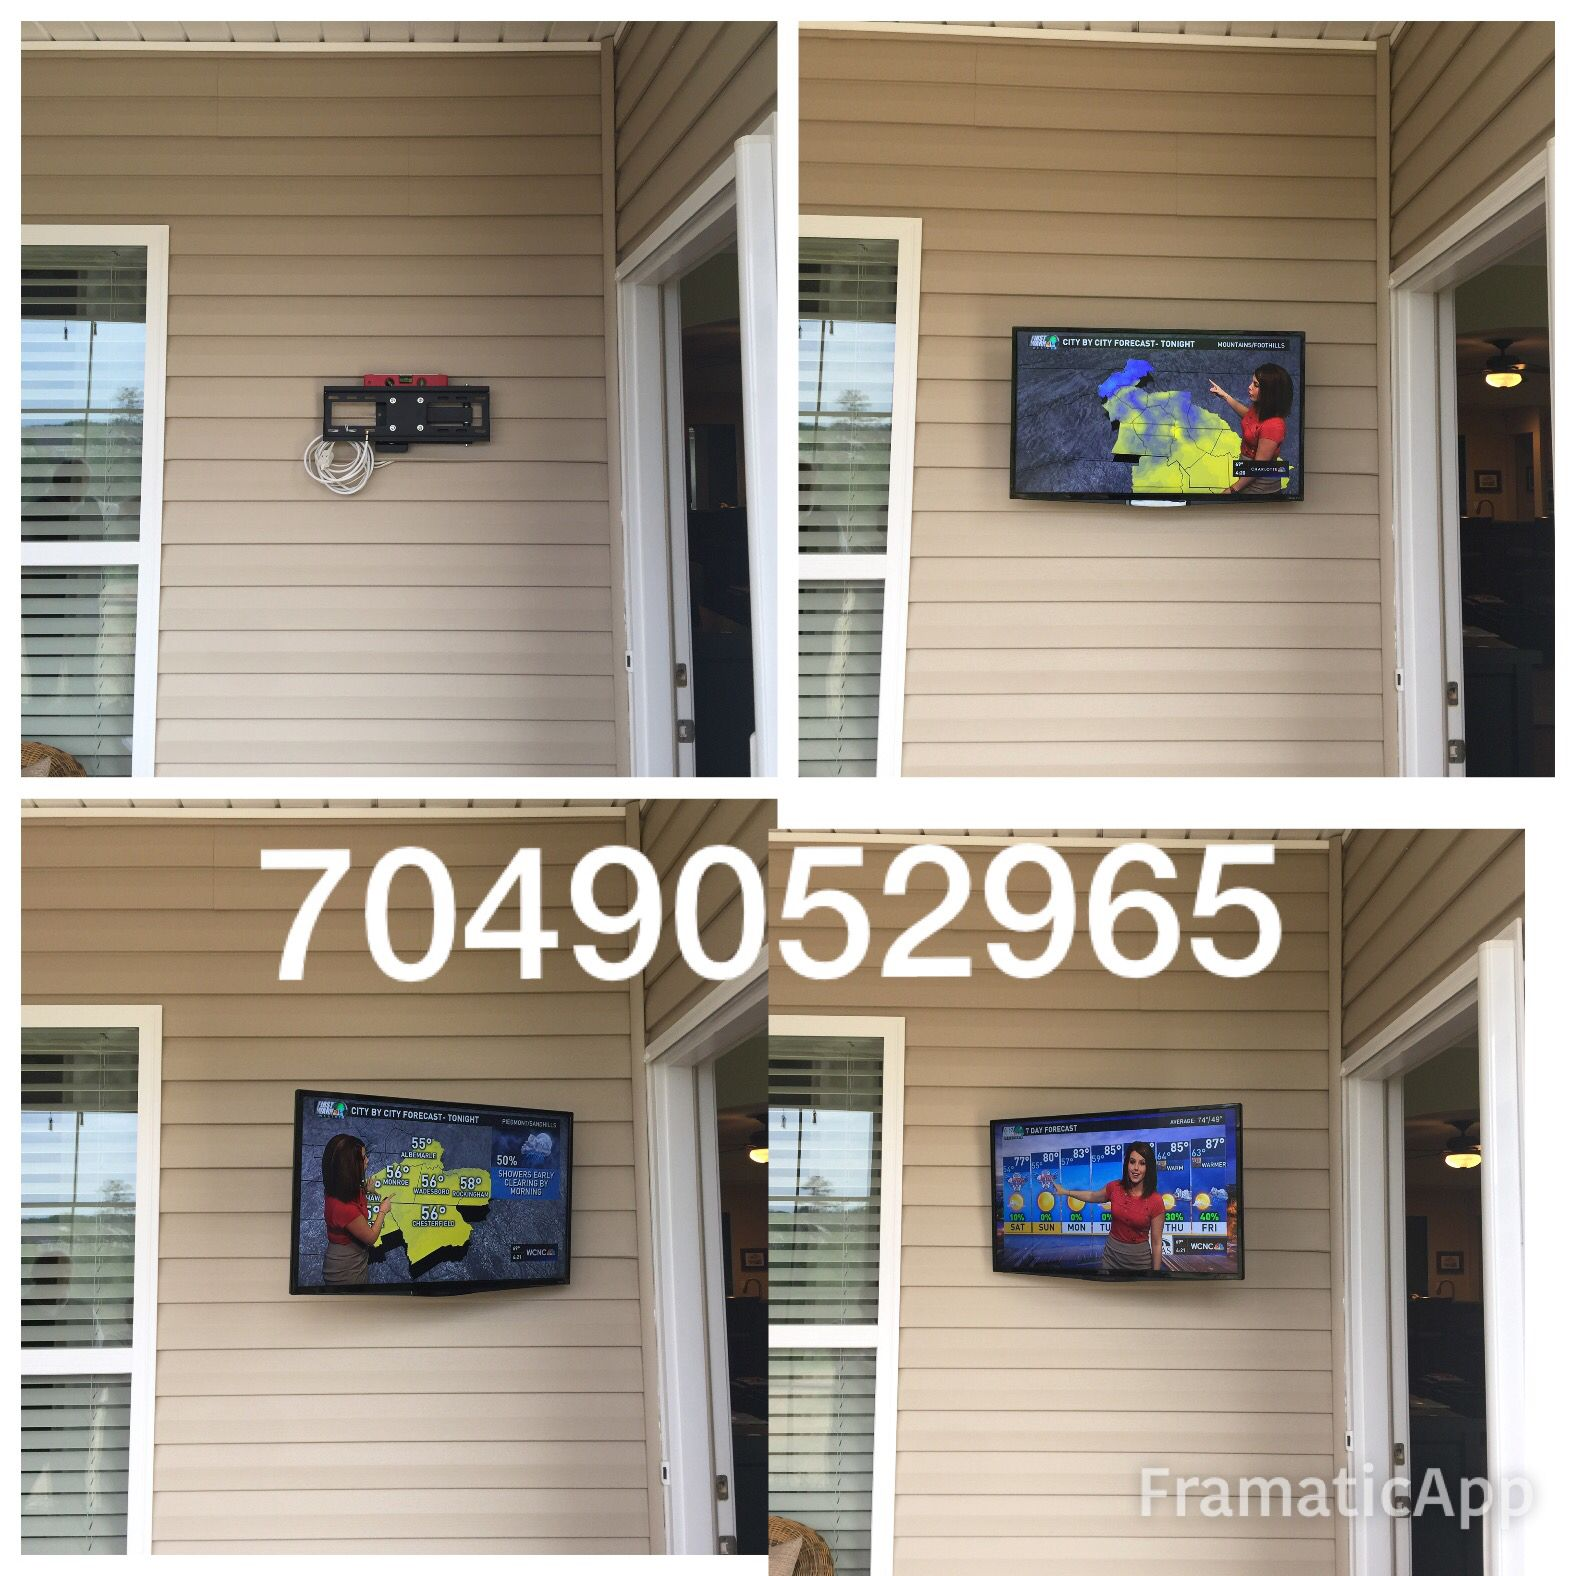 We Offer A Seamless Quot No Wires Showing Quot Option With Our